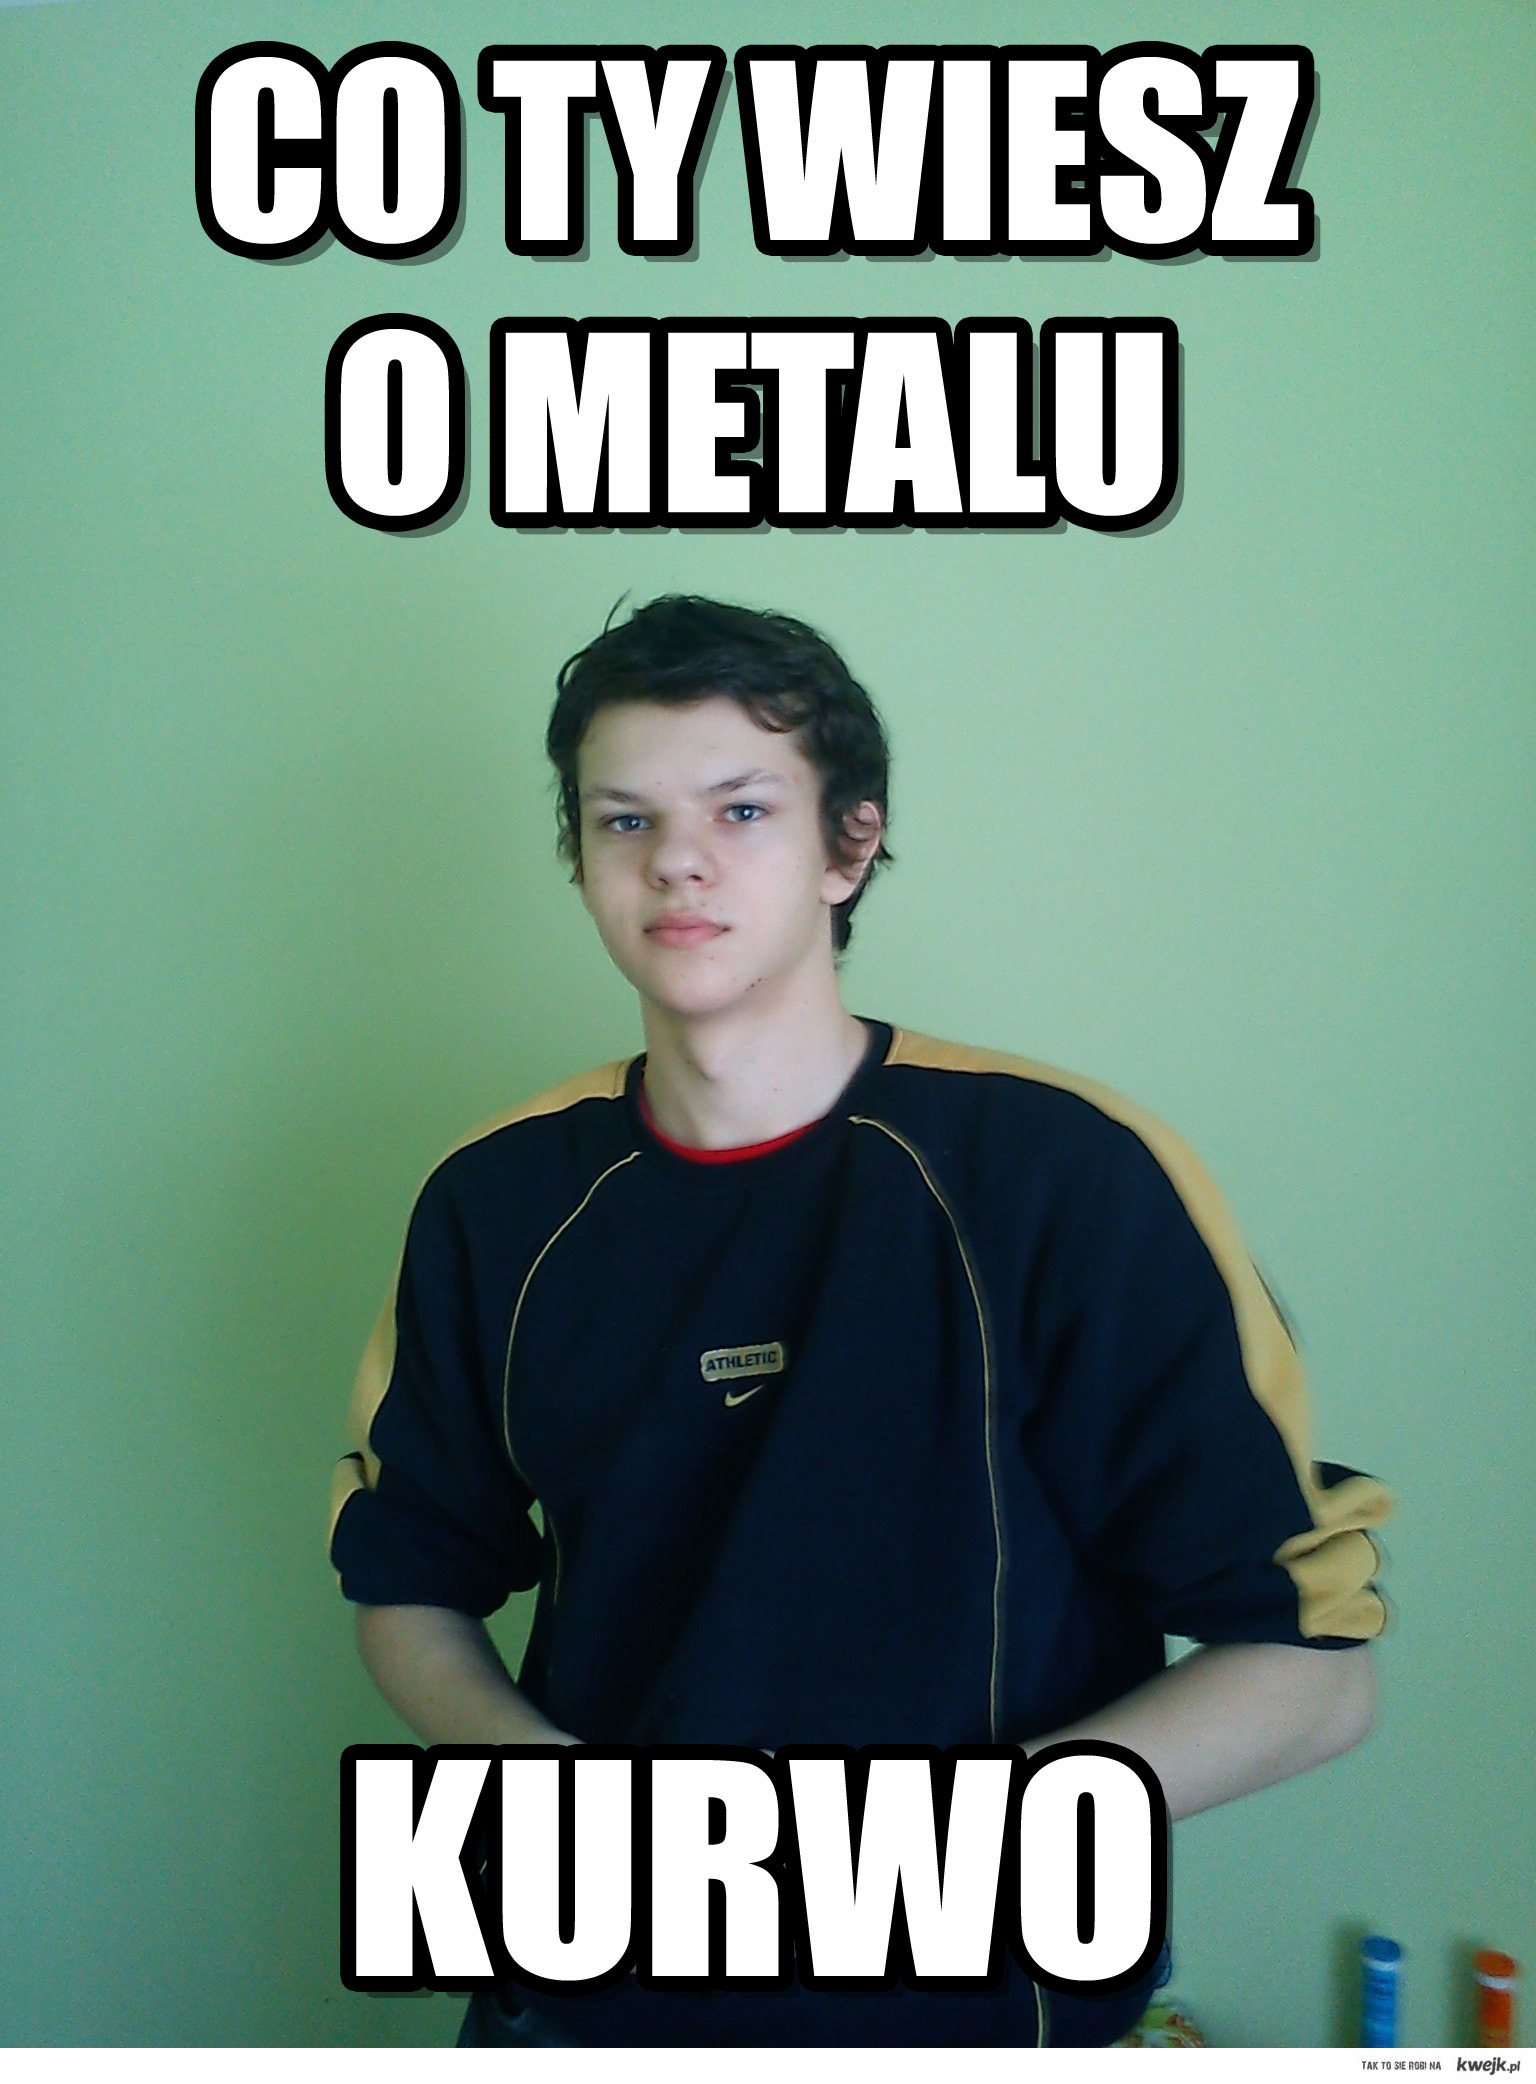 CO TY WIESZ O METALU